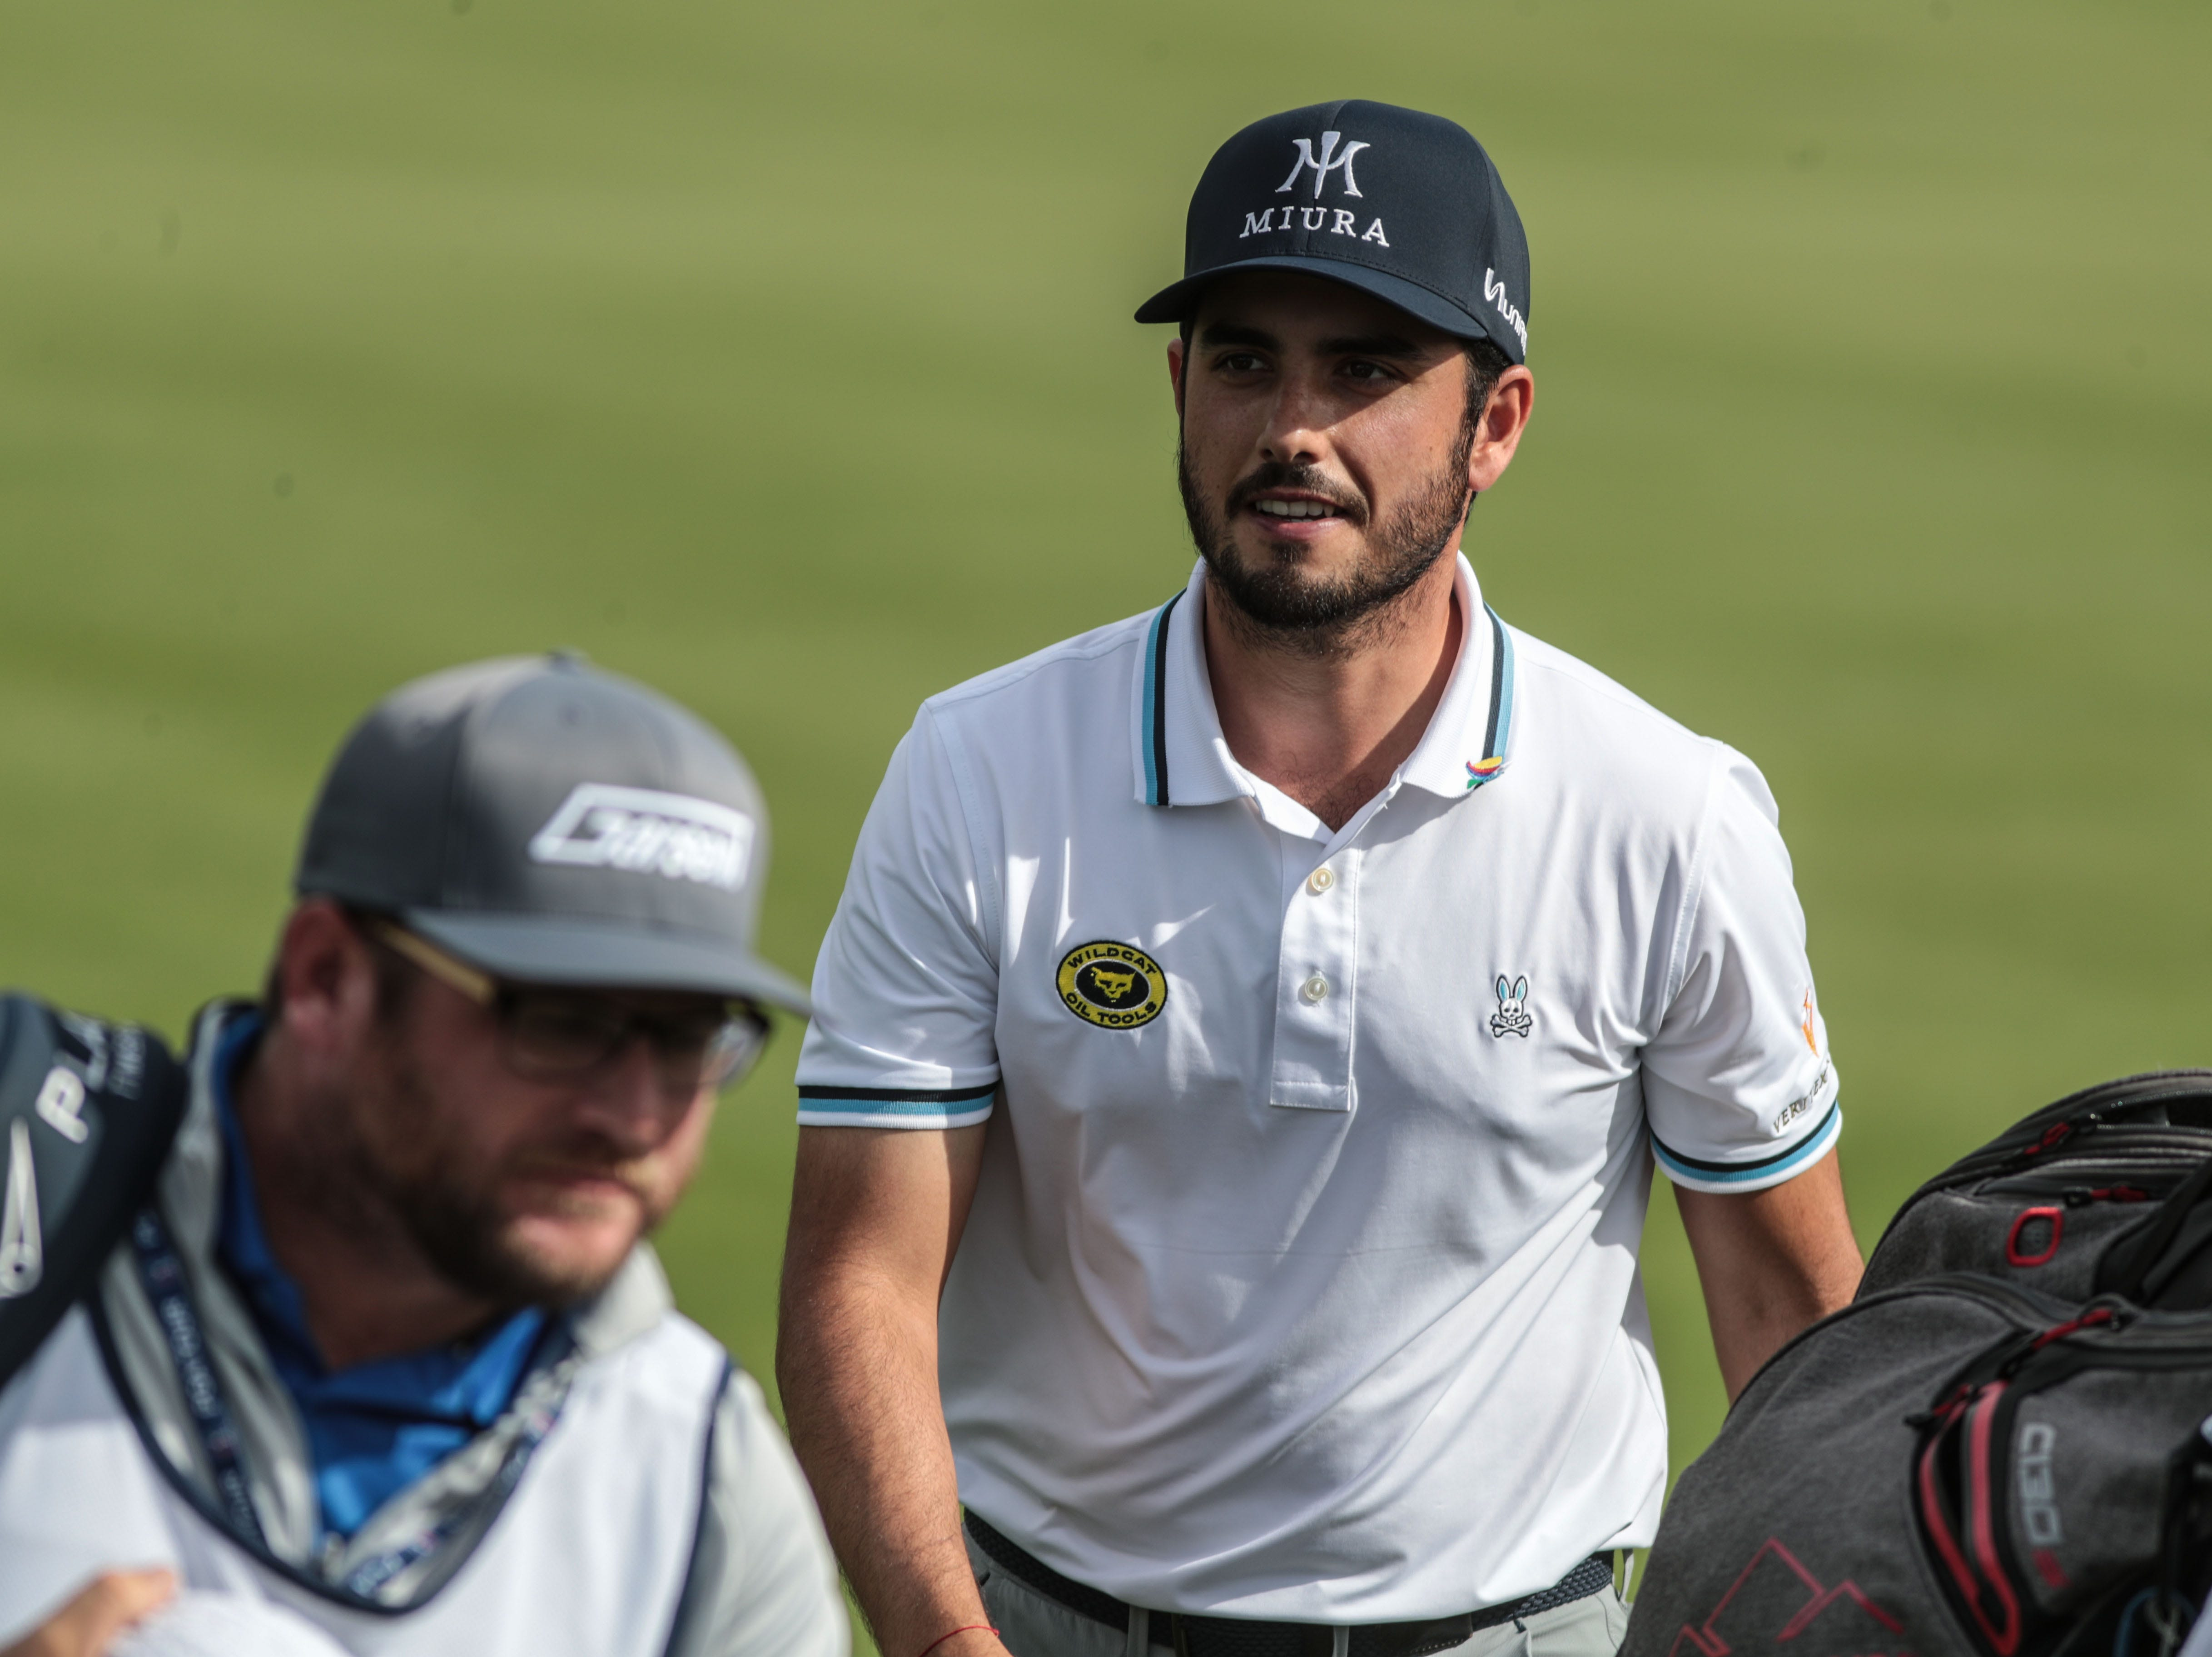 Abraham Ancer on 9 on the Nicklaus Tournament Course at PGA West in La Quinta during the 2nd round of the Desert Classic on Friday, January 18, 2019.